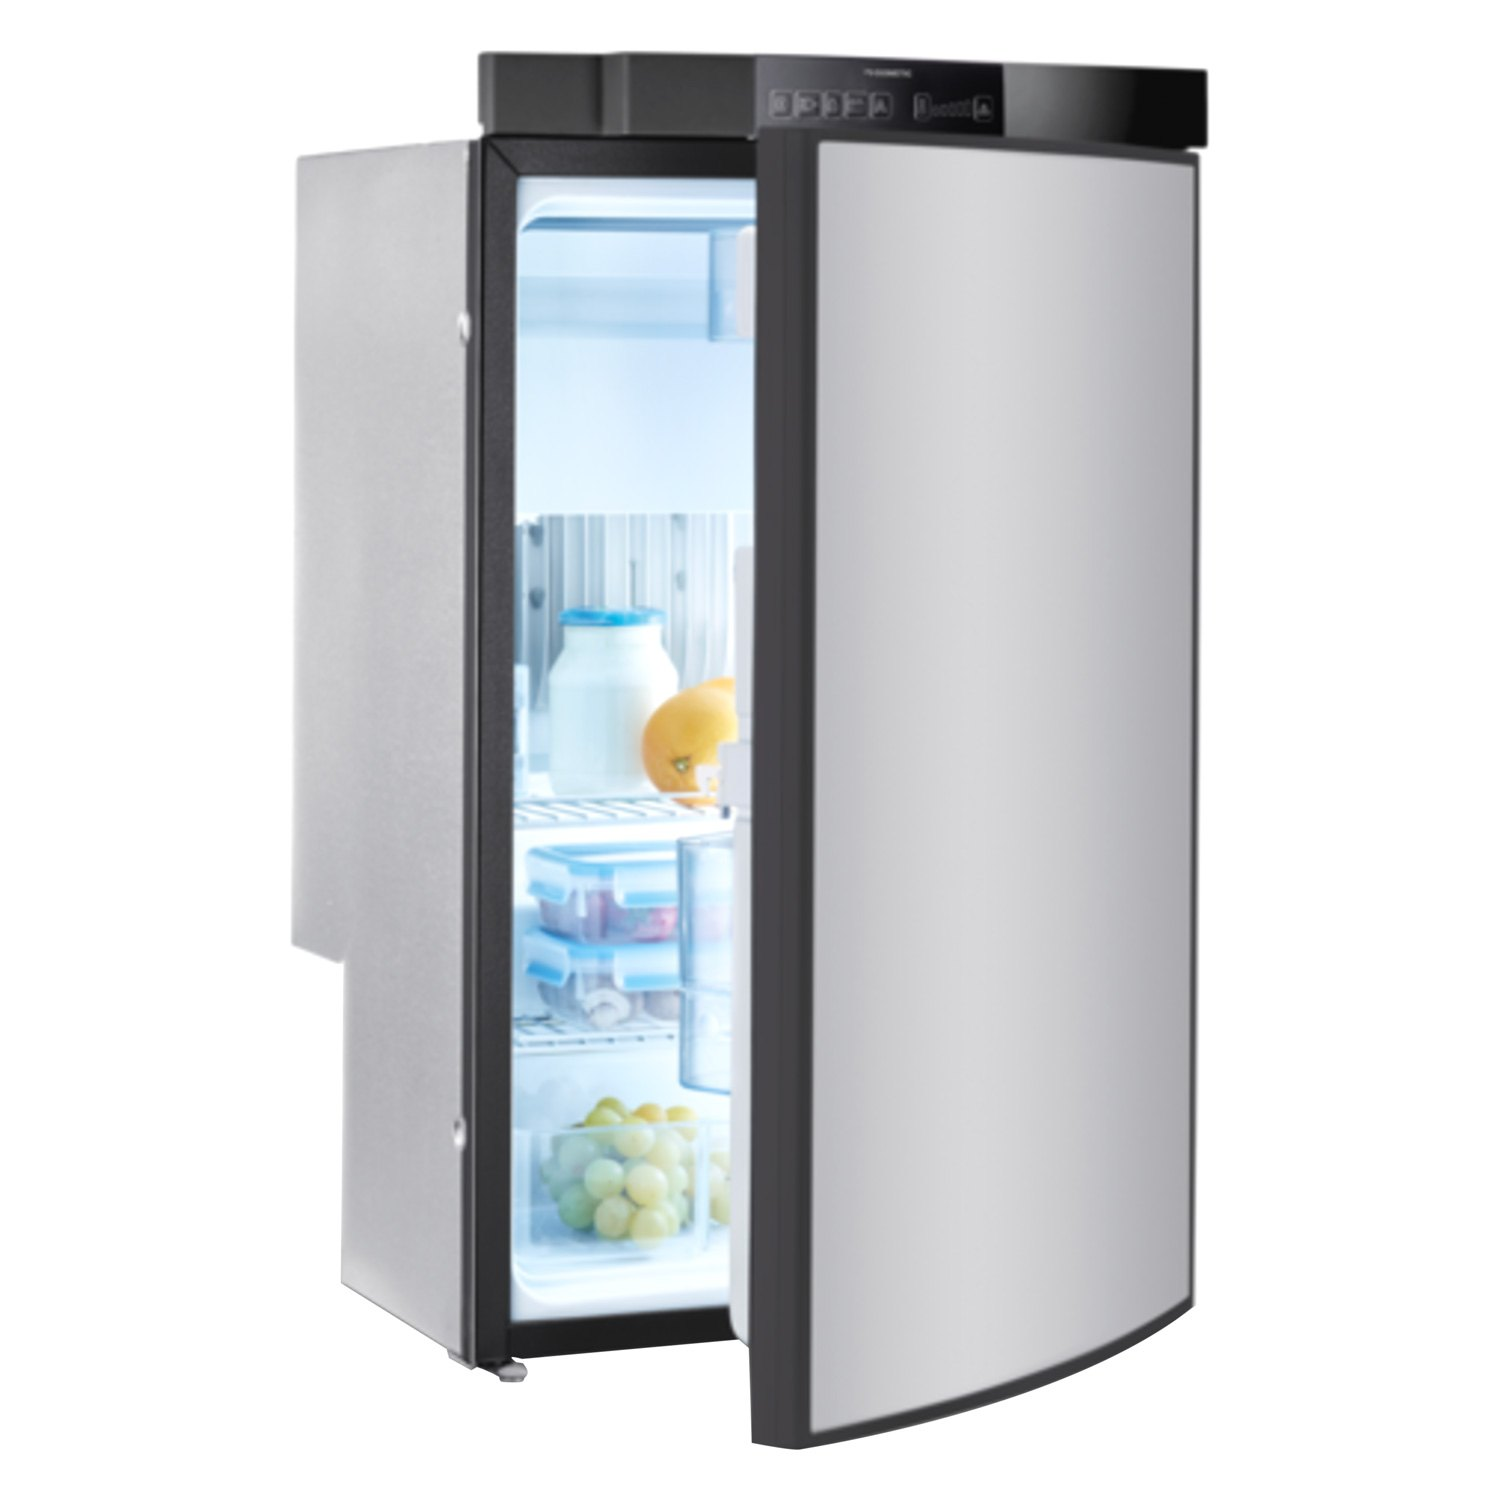 dometic single compartment refrigerator freezer. Black Bedroom Furniture Sets. Home Design Ideas